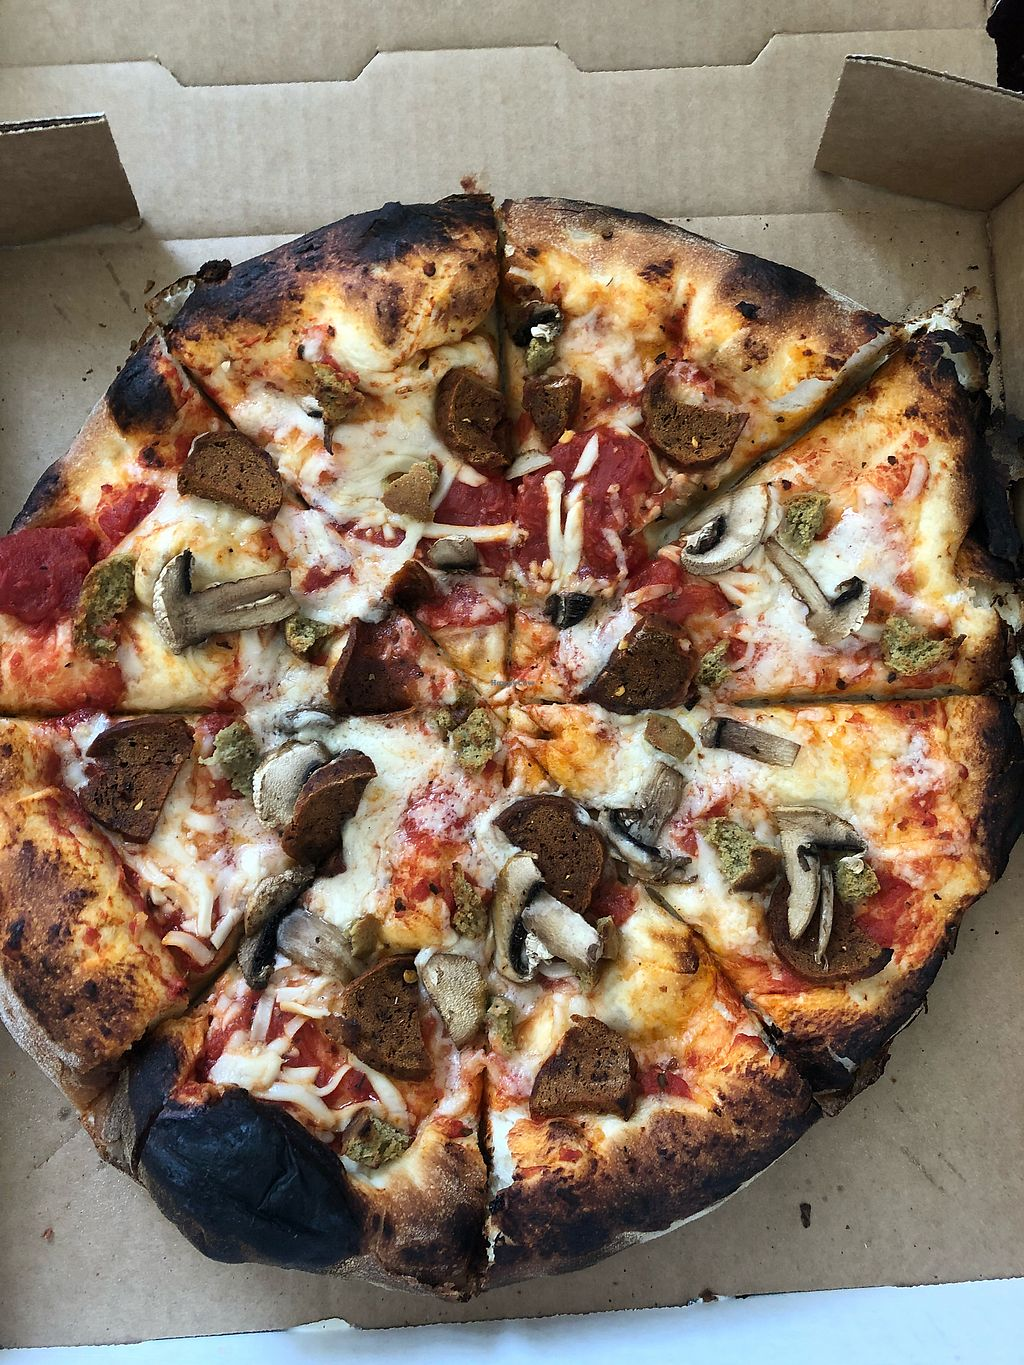 """Photo of The Parlor  by <a href=""""/members/profile/ArielRoberson"""">ArielRoberson</a> <br/>Pizza with vegan cheese, vegan sausage, and vegan pepperoni  <br/> February 6, 2018  - <a href='/contact/abuse/image/15520/355823'>Report</a>"""